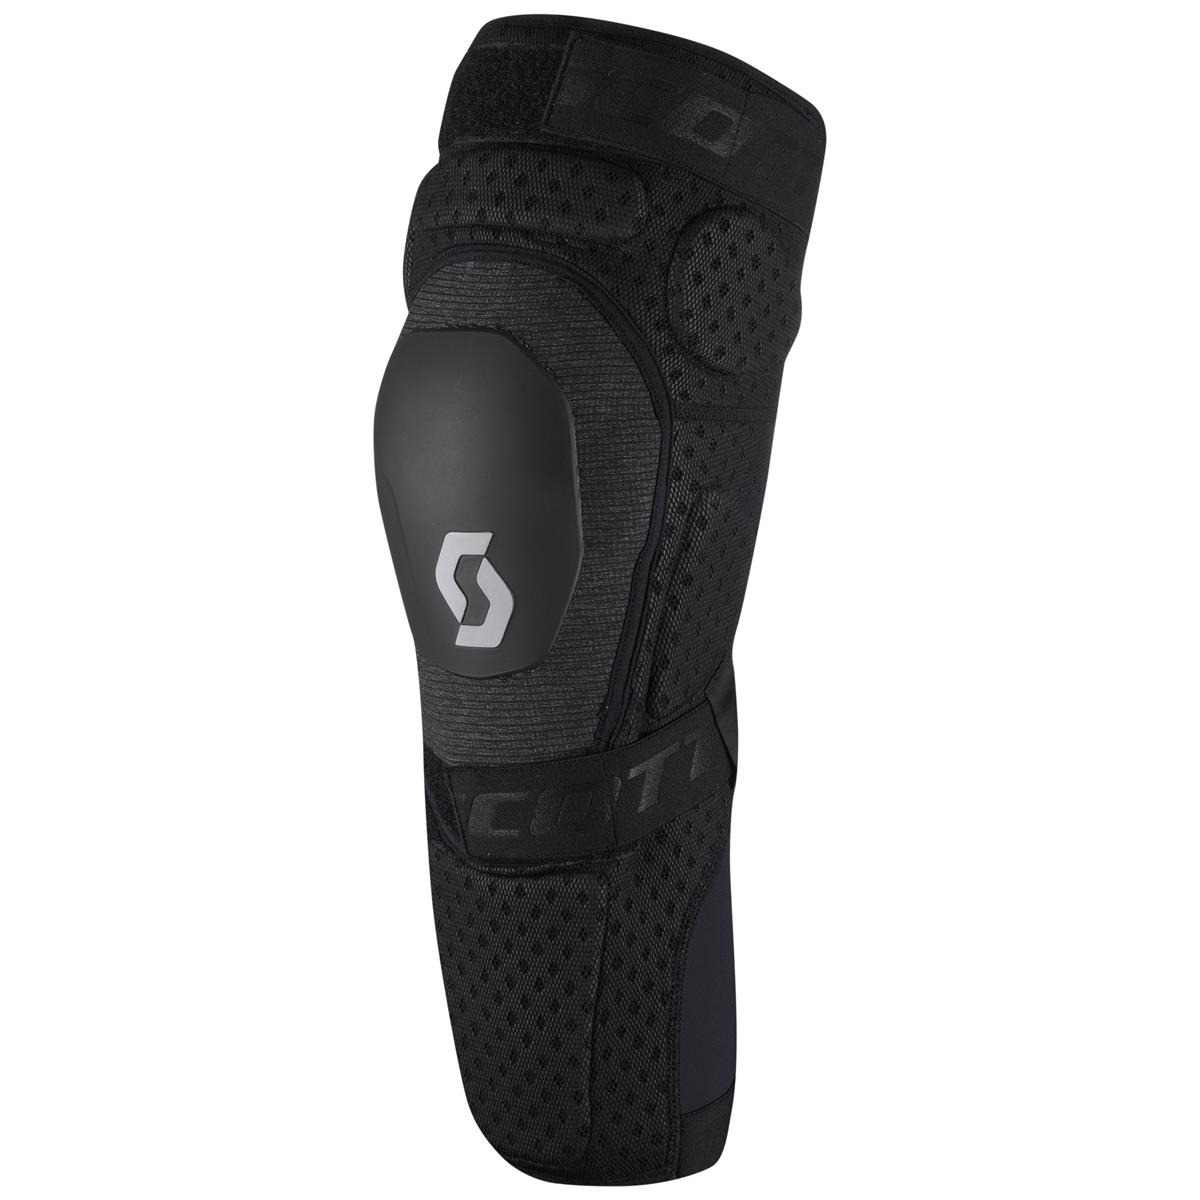 Knee Guard Softcon Hybrid Black - Size S